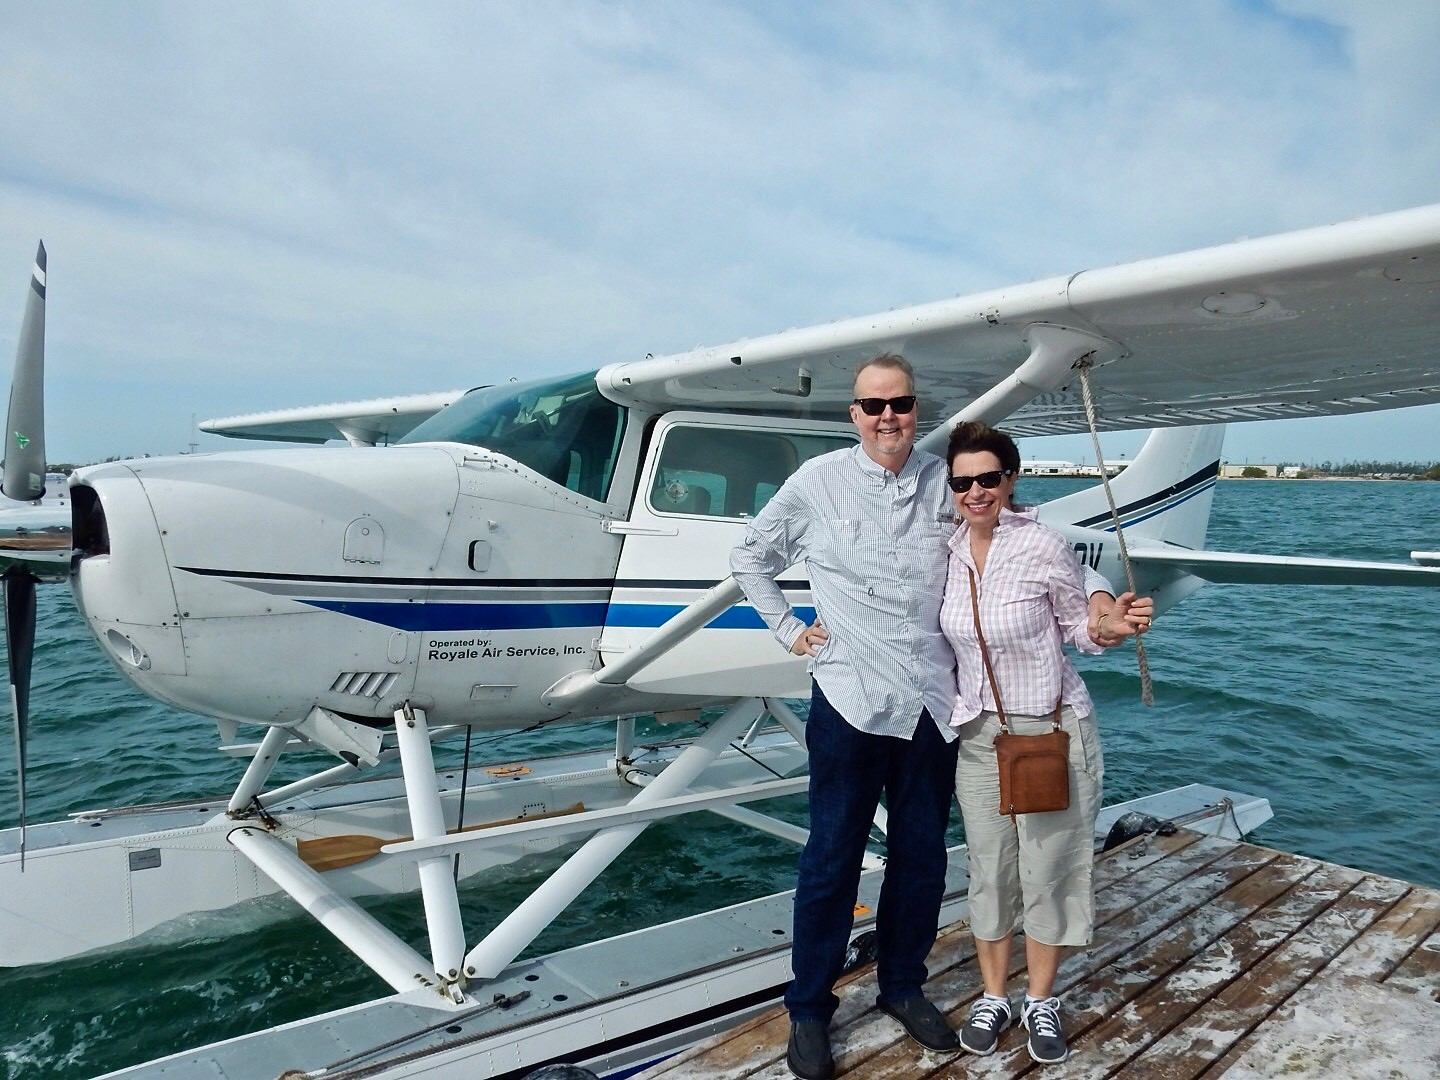 Kent and Yvonne by seaplane